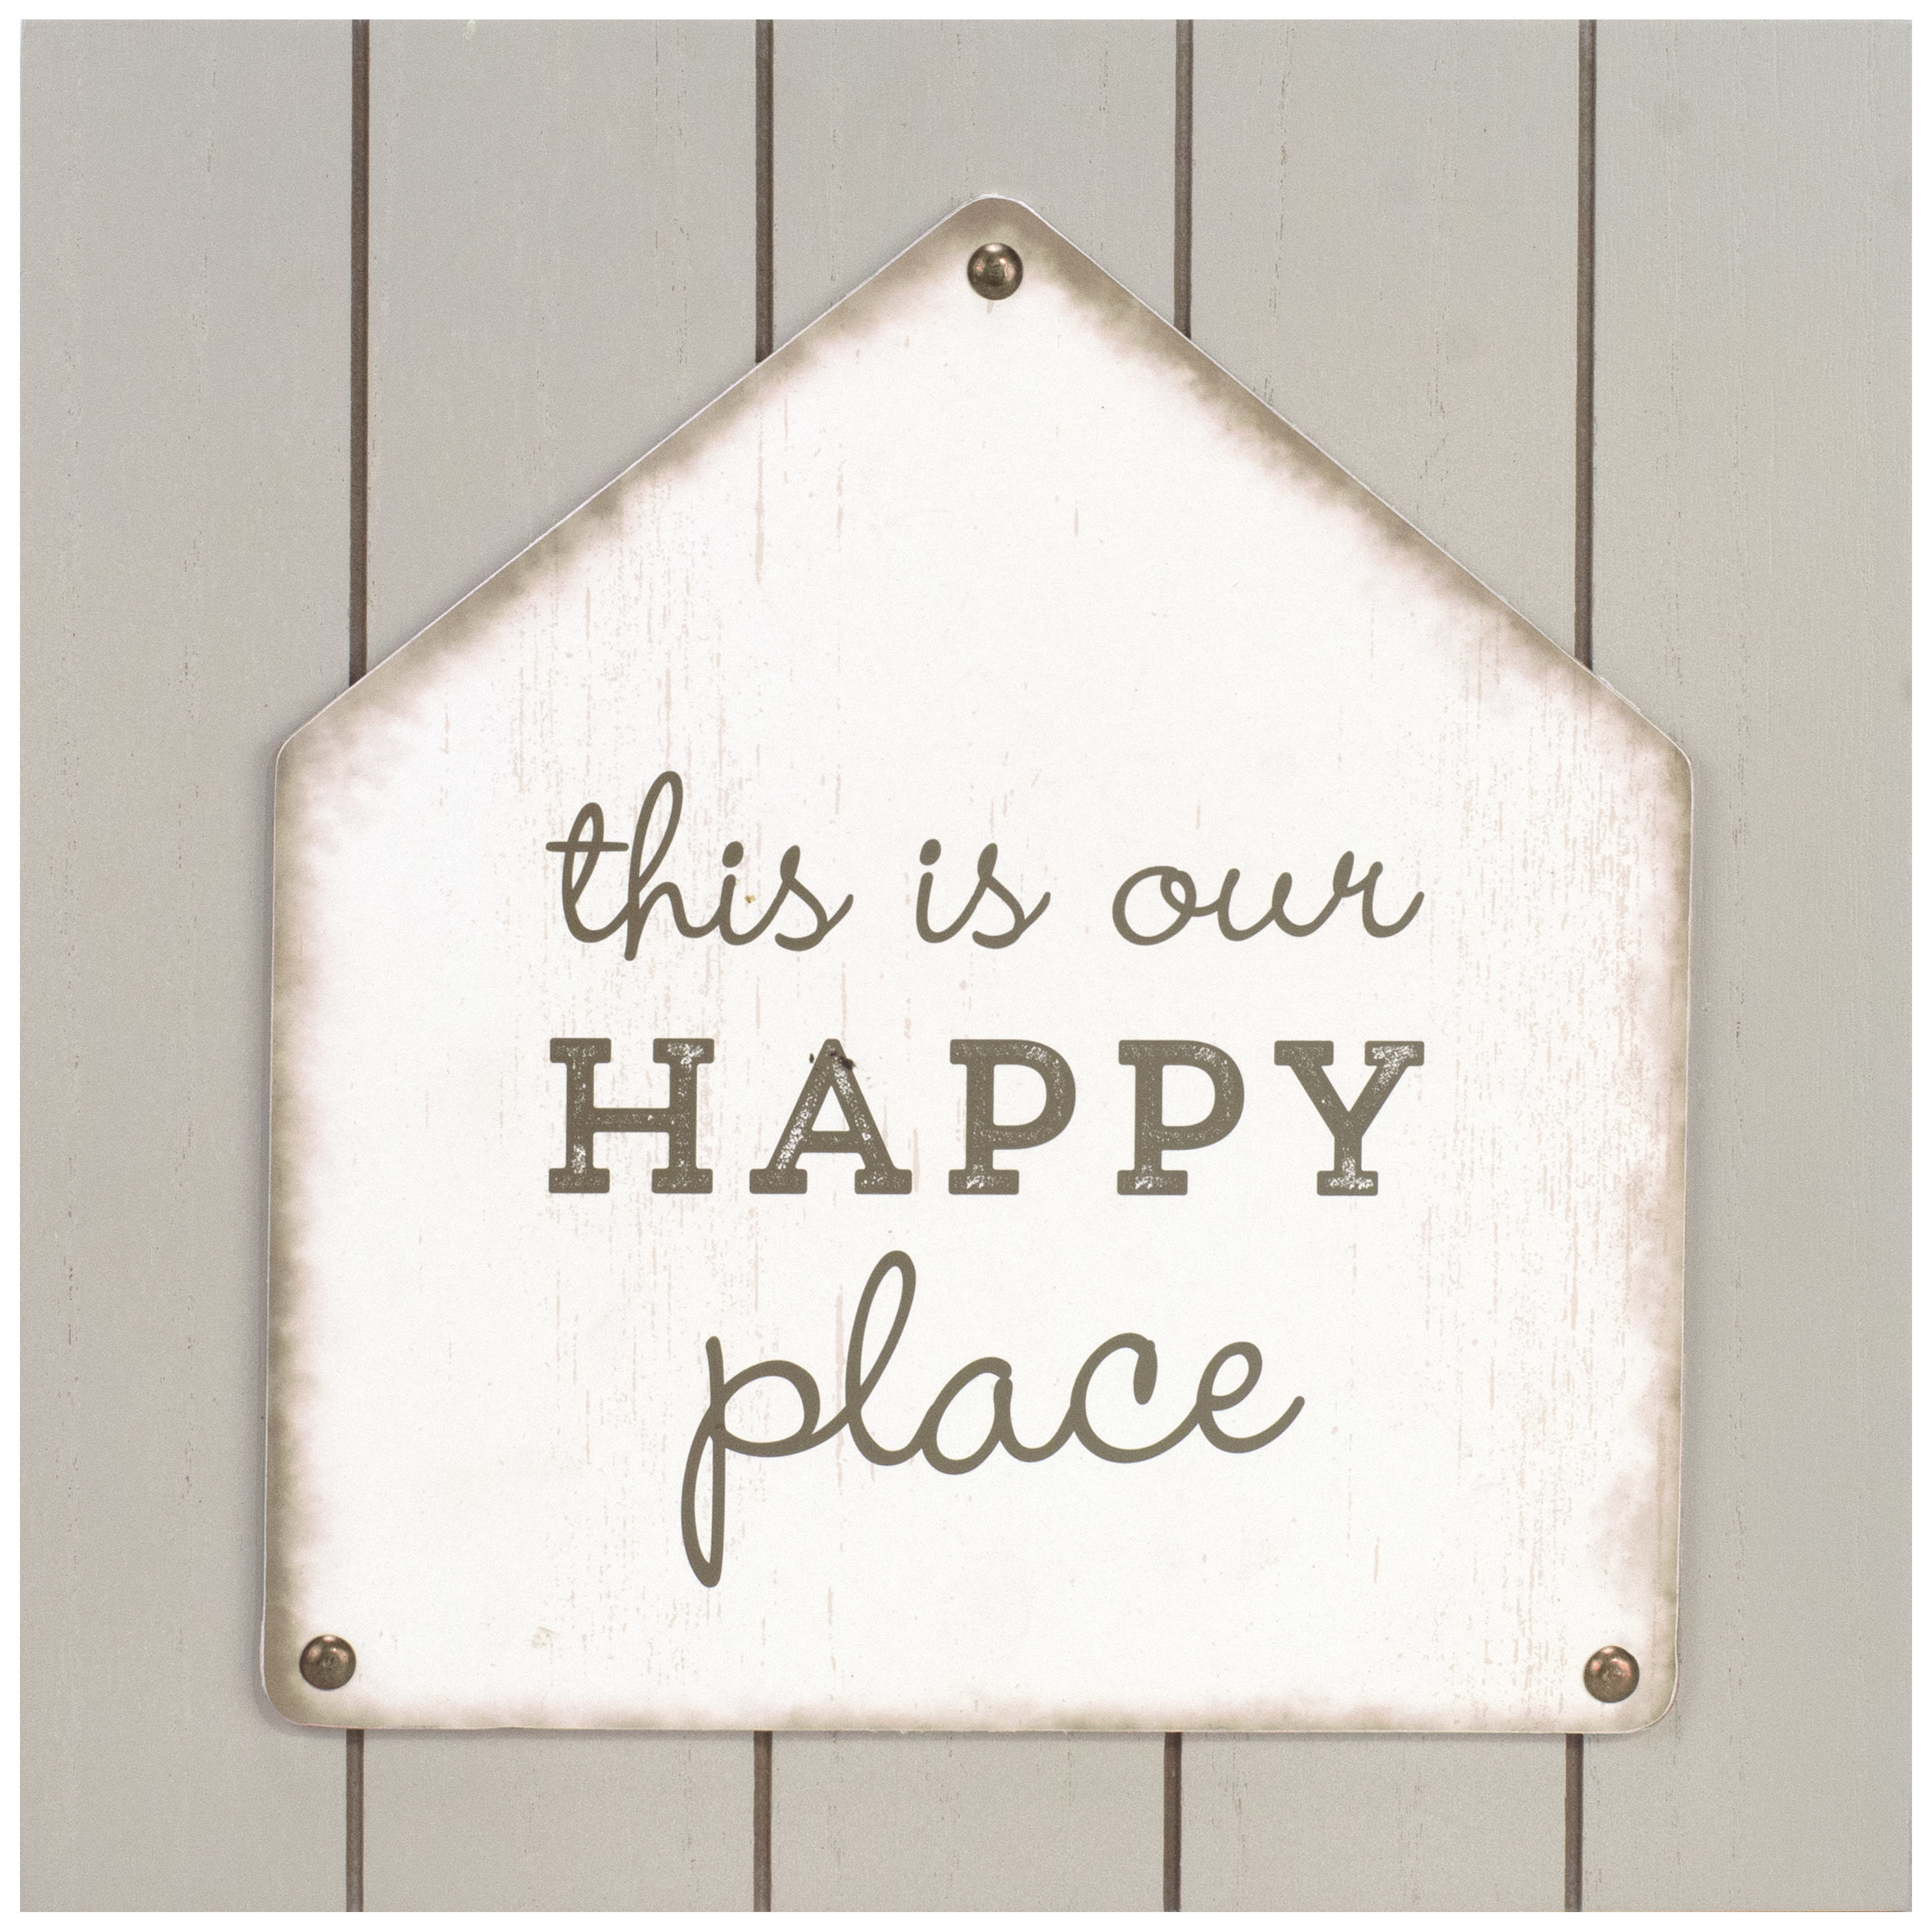 Wayfair Within Most Recently Released Choose Happiness 3d Cursive Metal Wall Decor (Gallery 13 of 20)